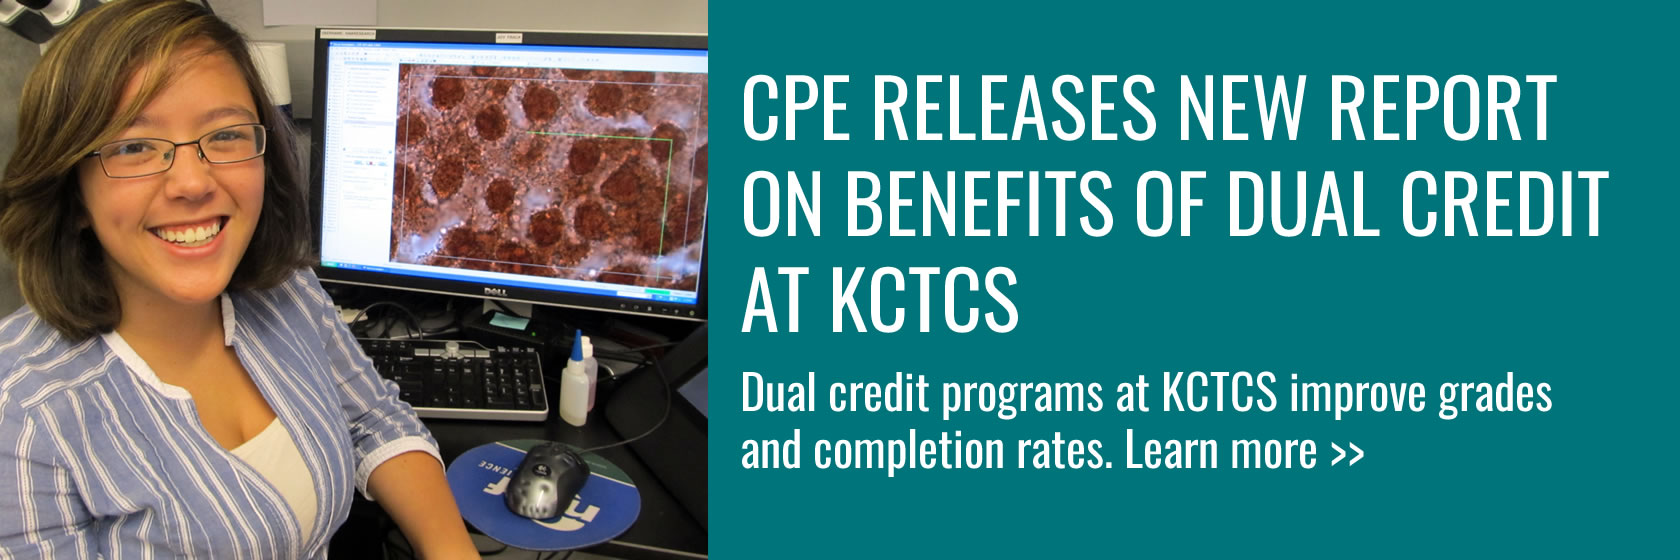 How does taking dual credit courses at KCTCS improve student success? CPE's latest report looks at outcomes and delves deep into the disparities in success based on race, gender and income.